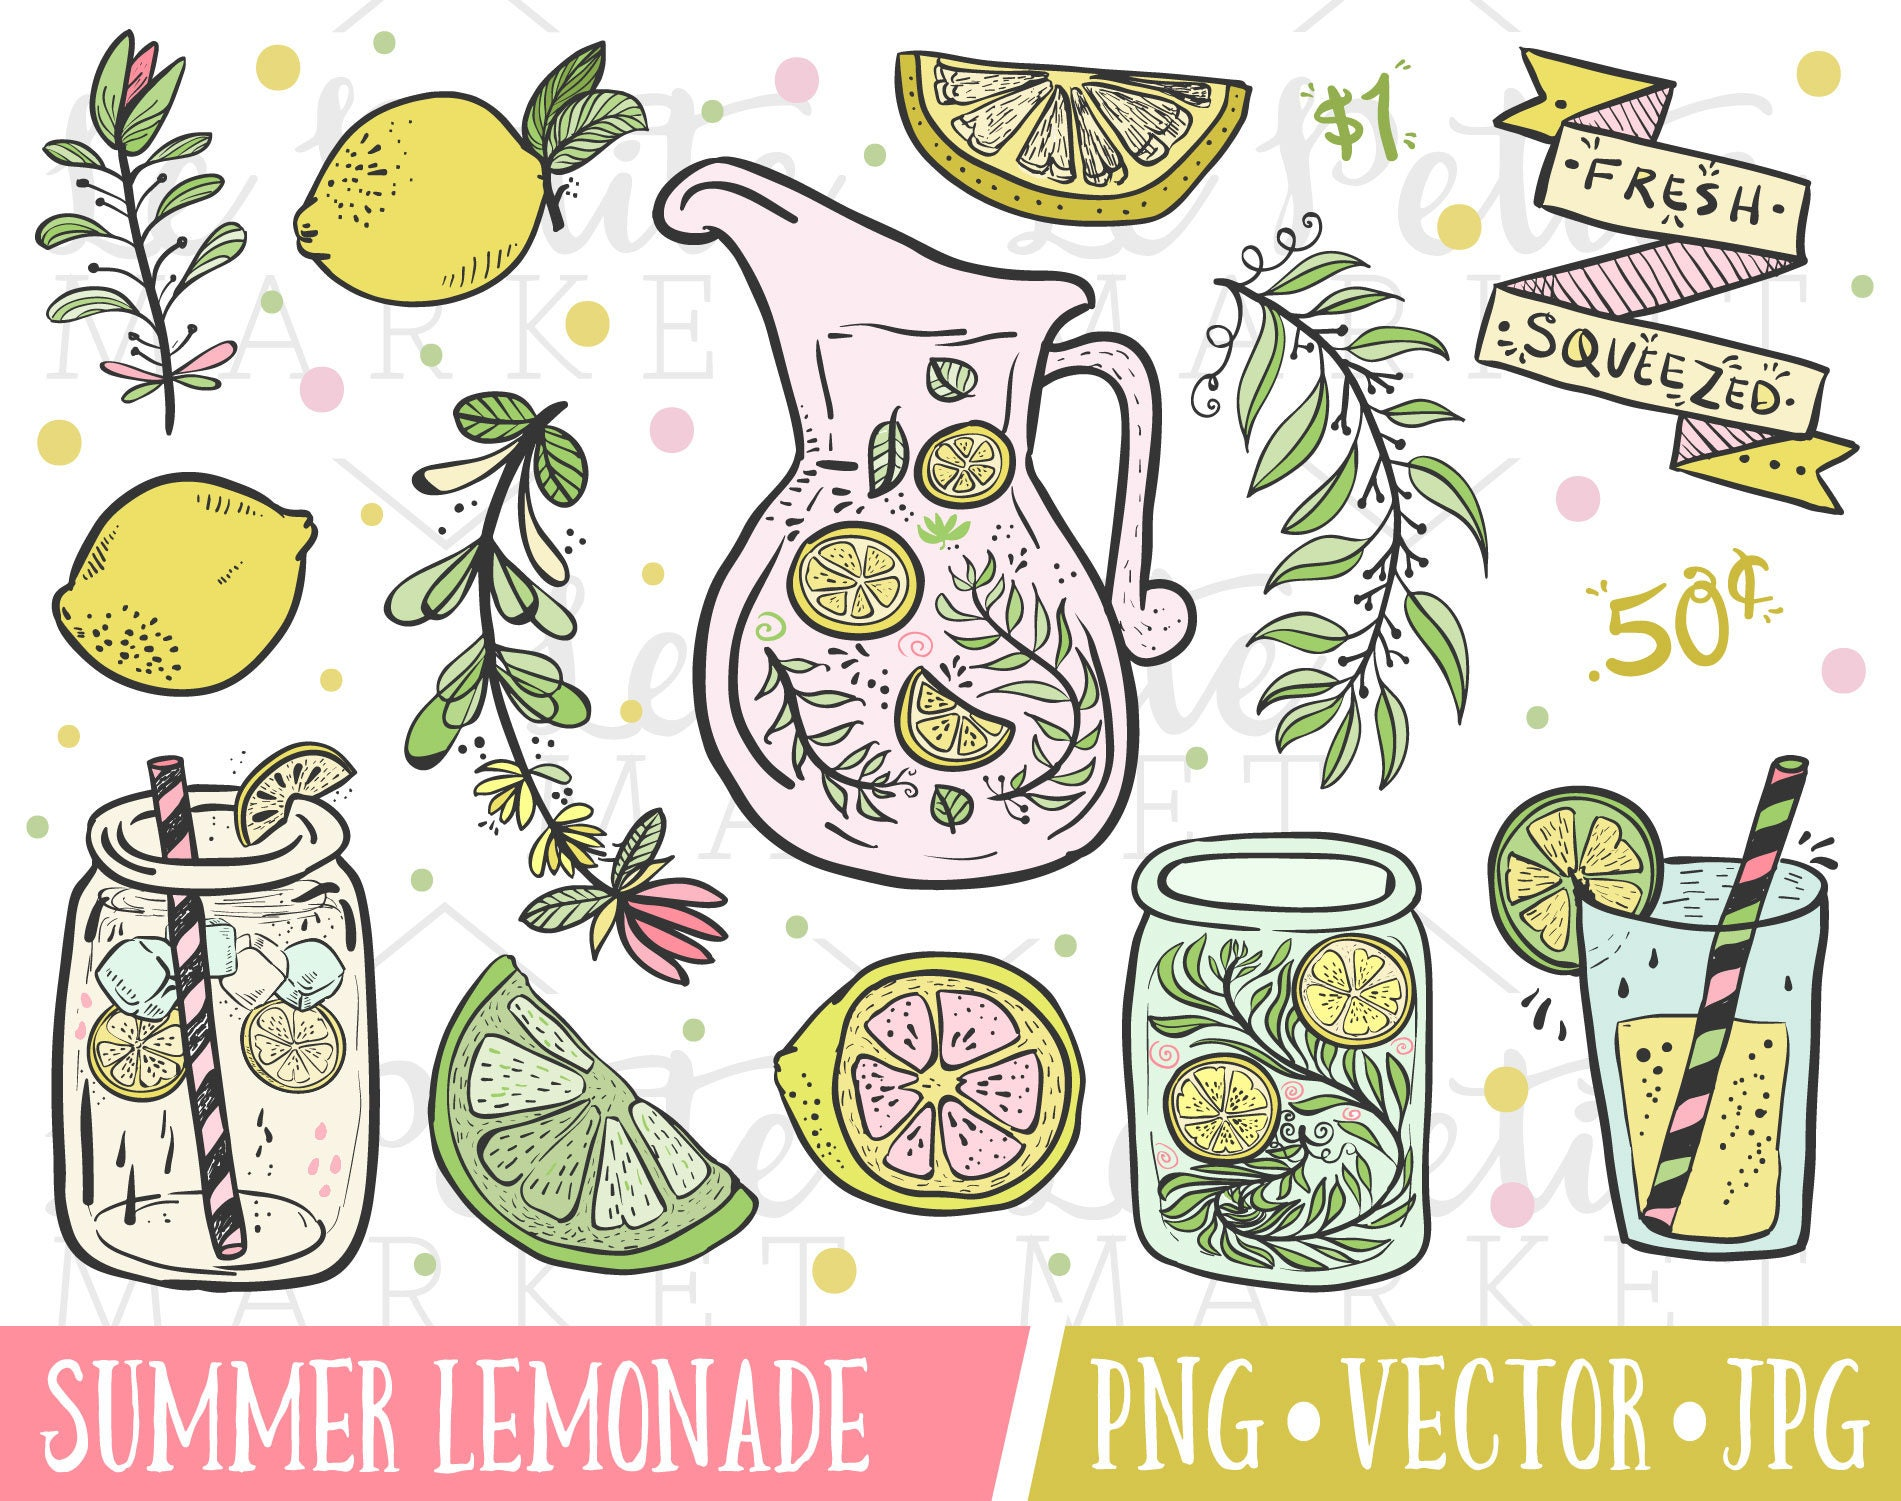 cute lemonade clipart images summer lemonade stand clipart rh etsy com lemonade clipart free lemonade clipart png